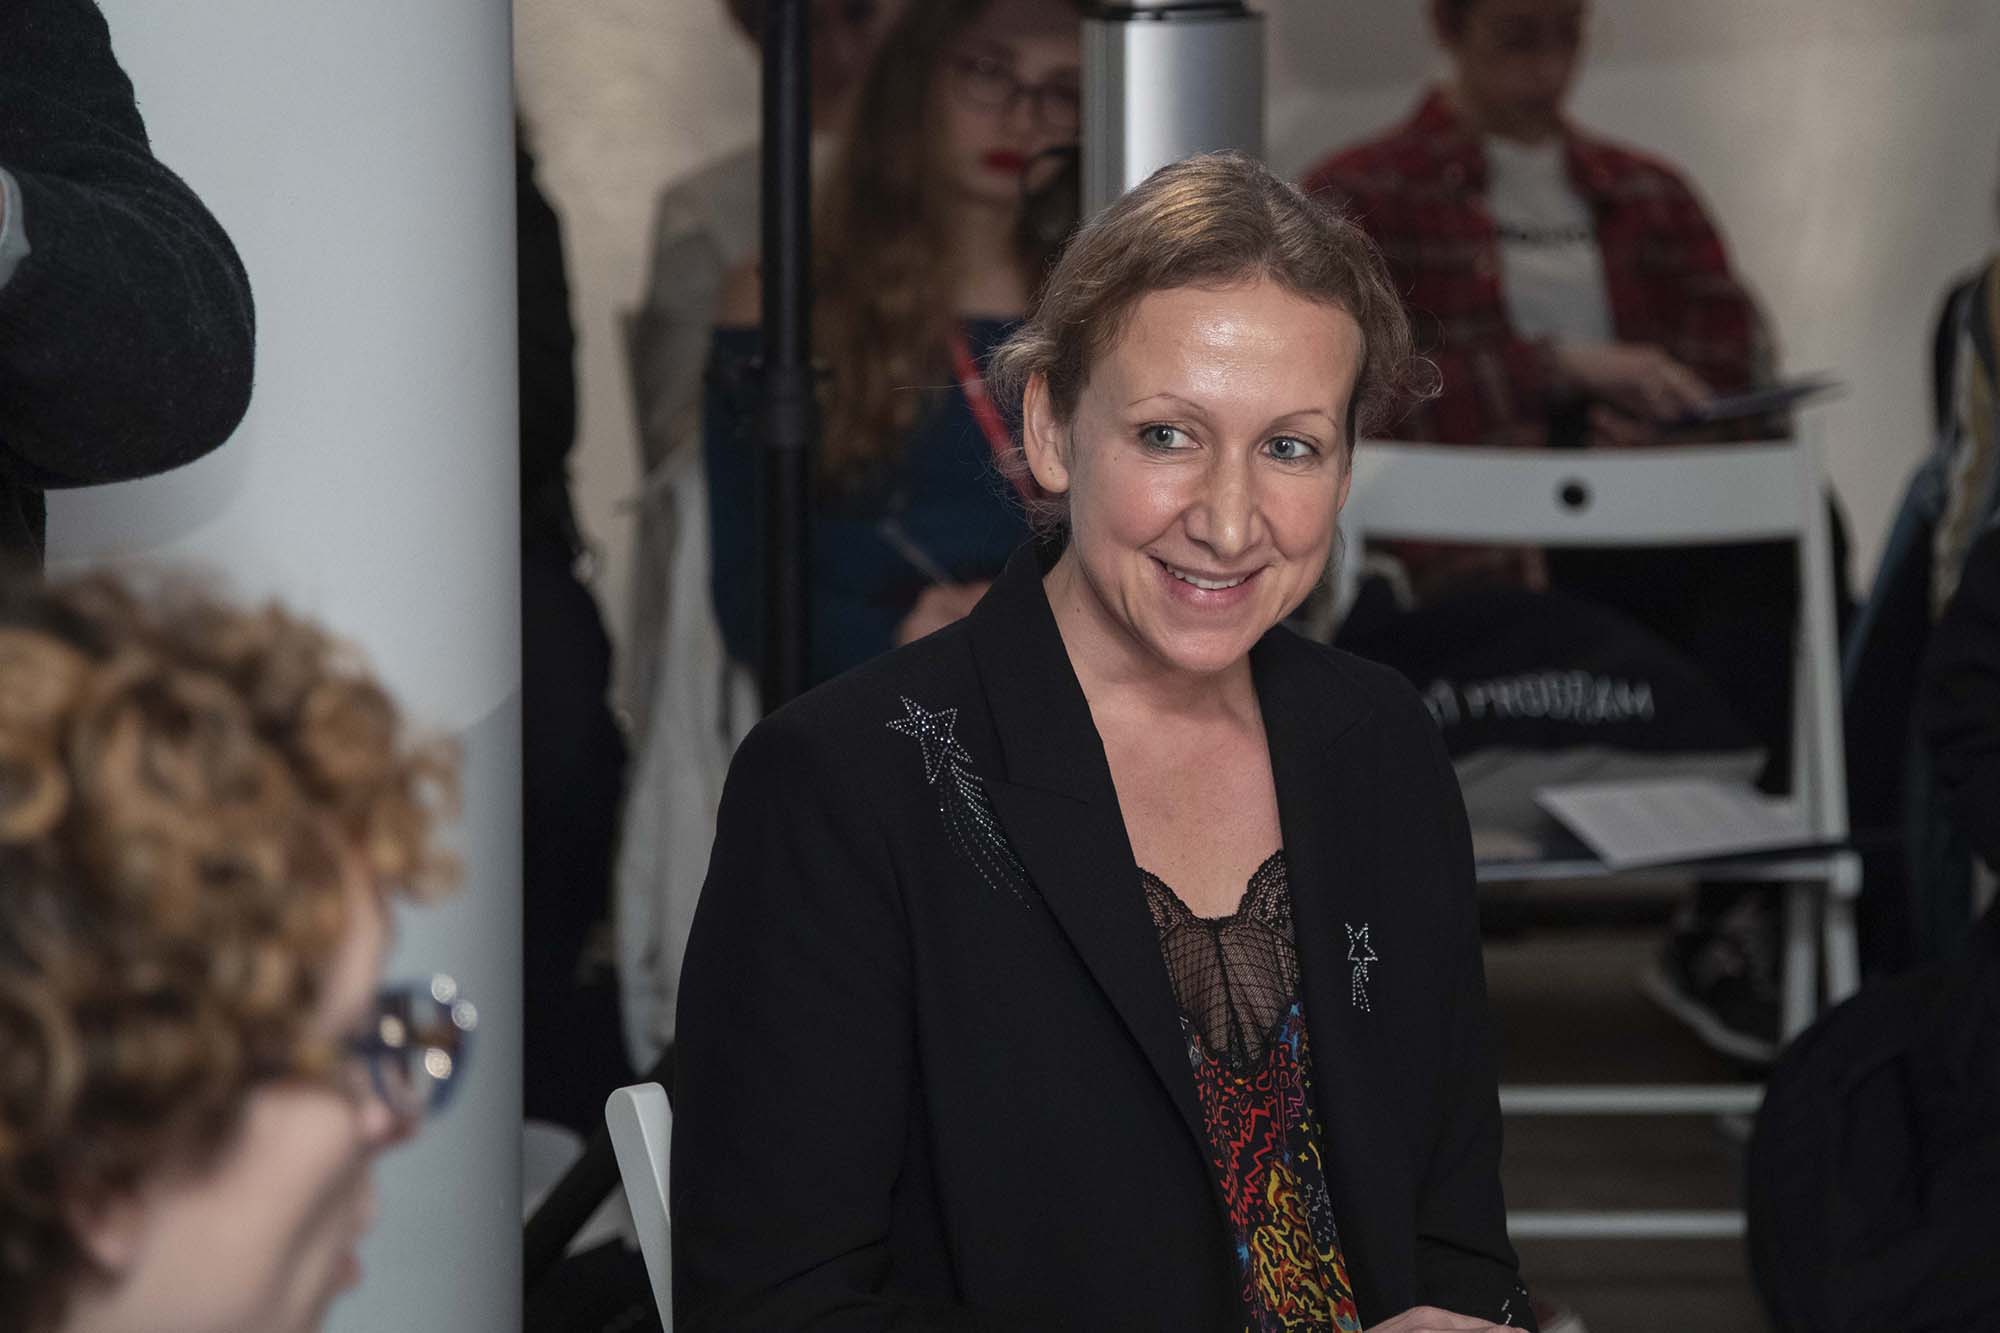 Claudia Paetzold during The Right to Refuse Therme Forum at British Pavilion during the 2019 Venice Biennale